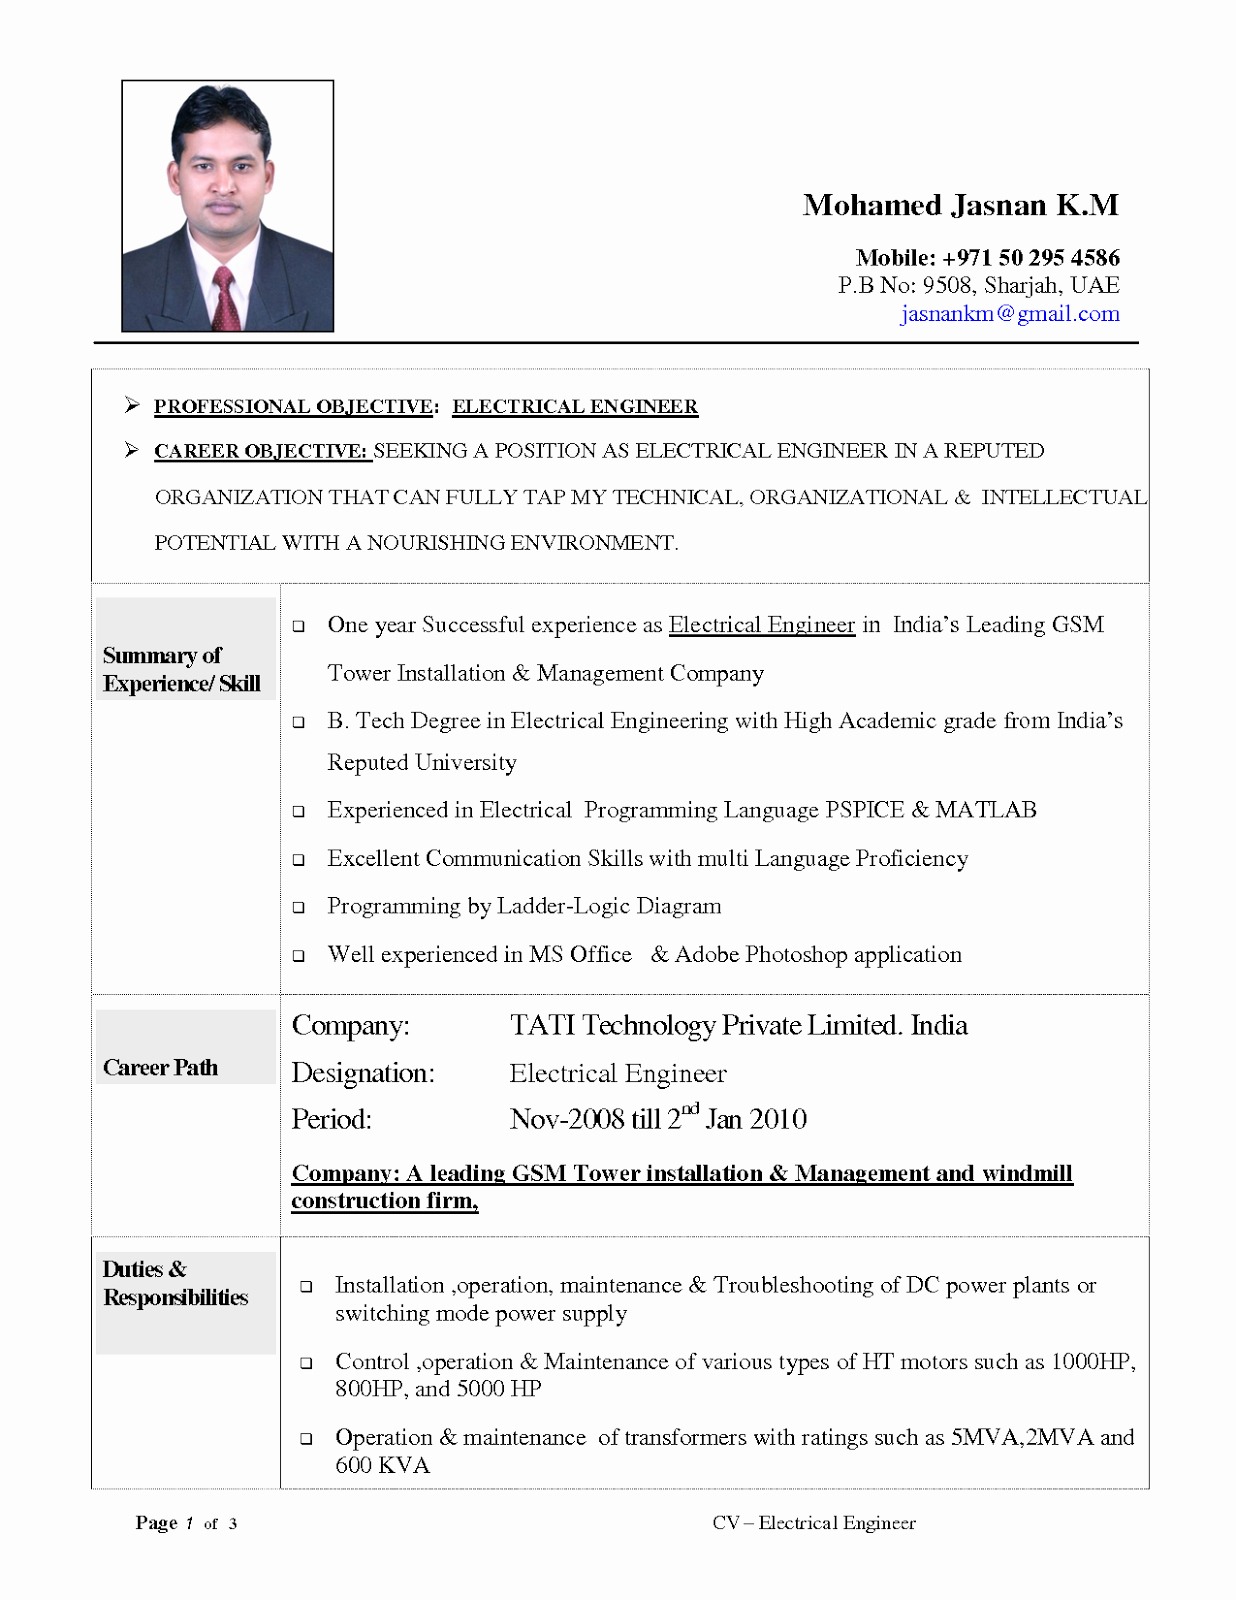 Electrical Engineer Resume Sample Elegant Resume Objective Examples Electrical Engineering Tipss